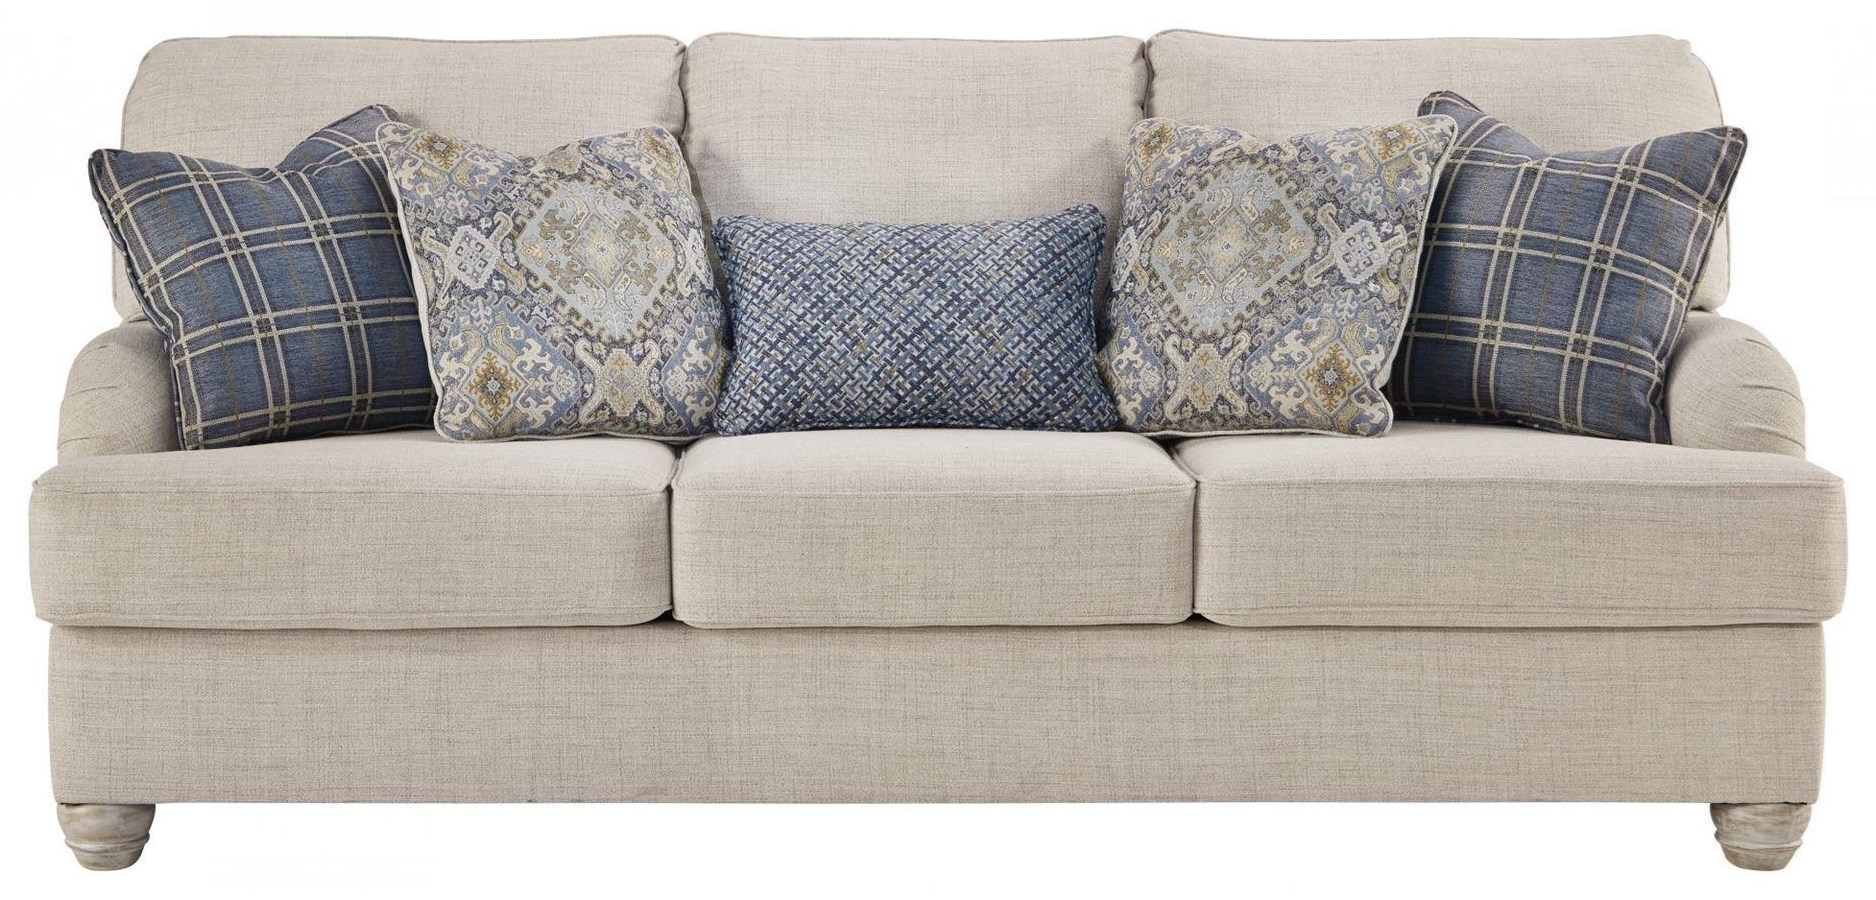 Nicola Nicola Sofa with Accent Pillows by Ashley at Morris Home